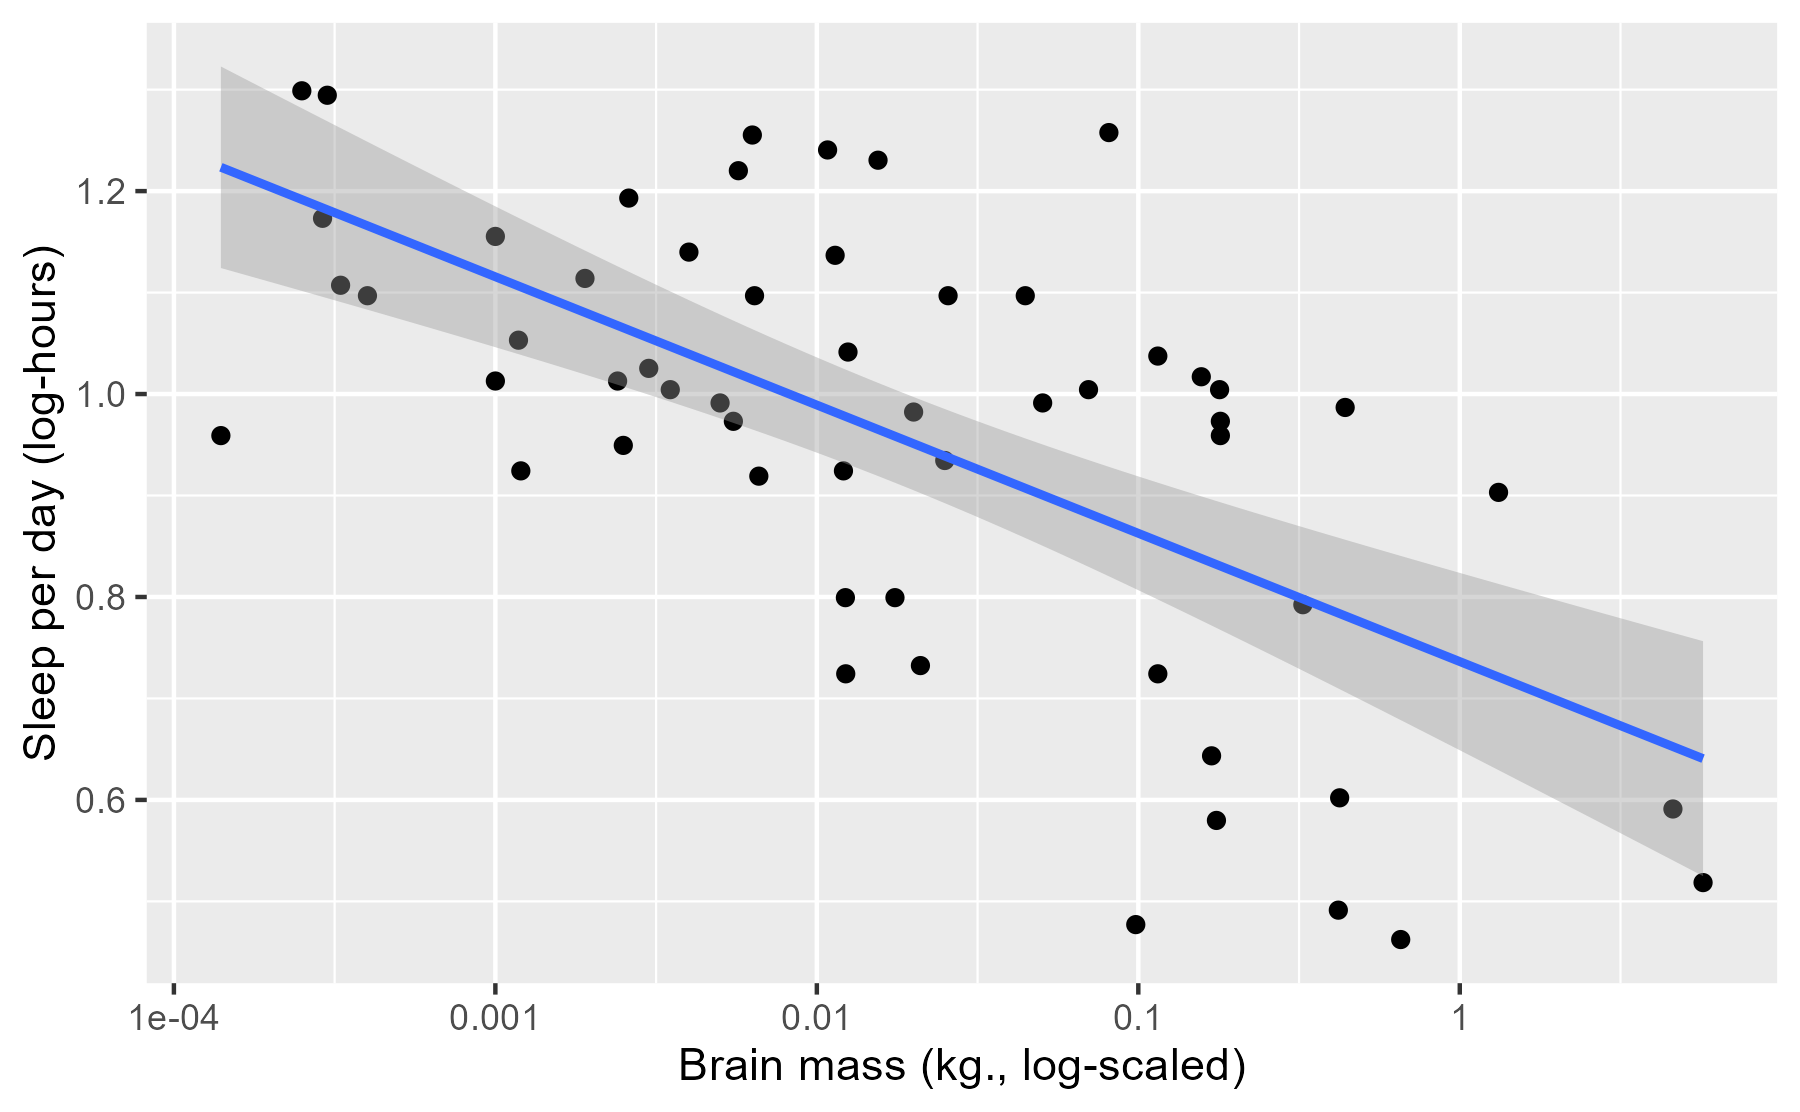 Brain mass by sleep hours, log-10 scale, plus the predicted mean and 95% CI from a linear regression.